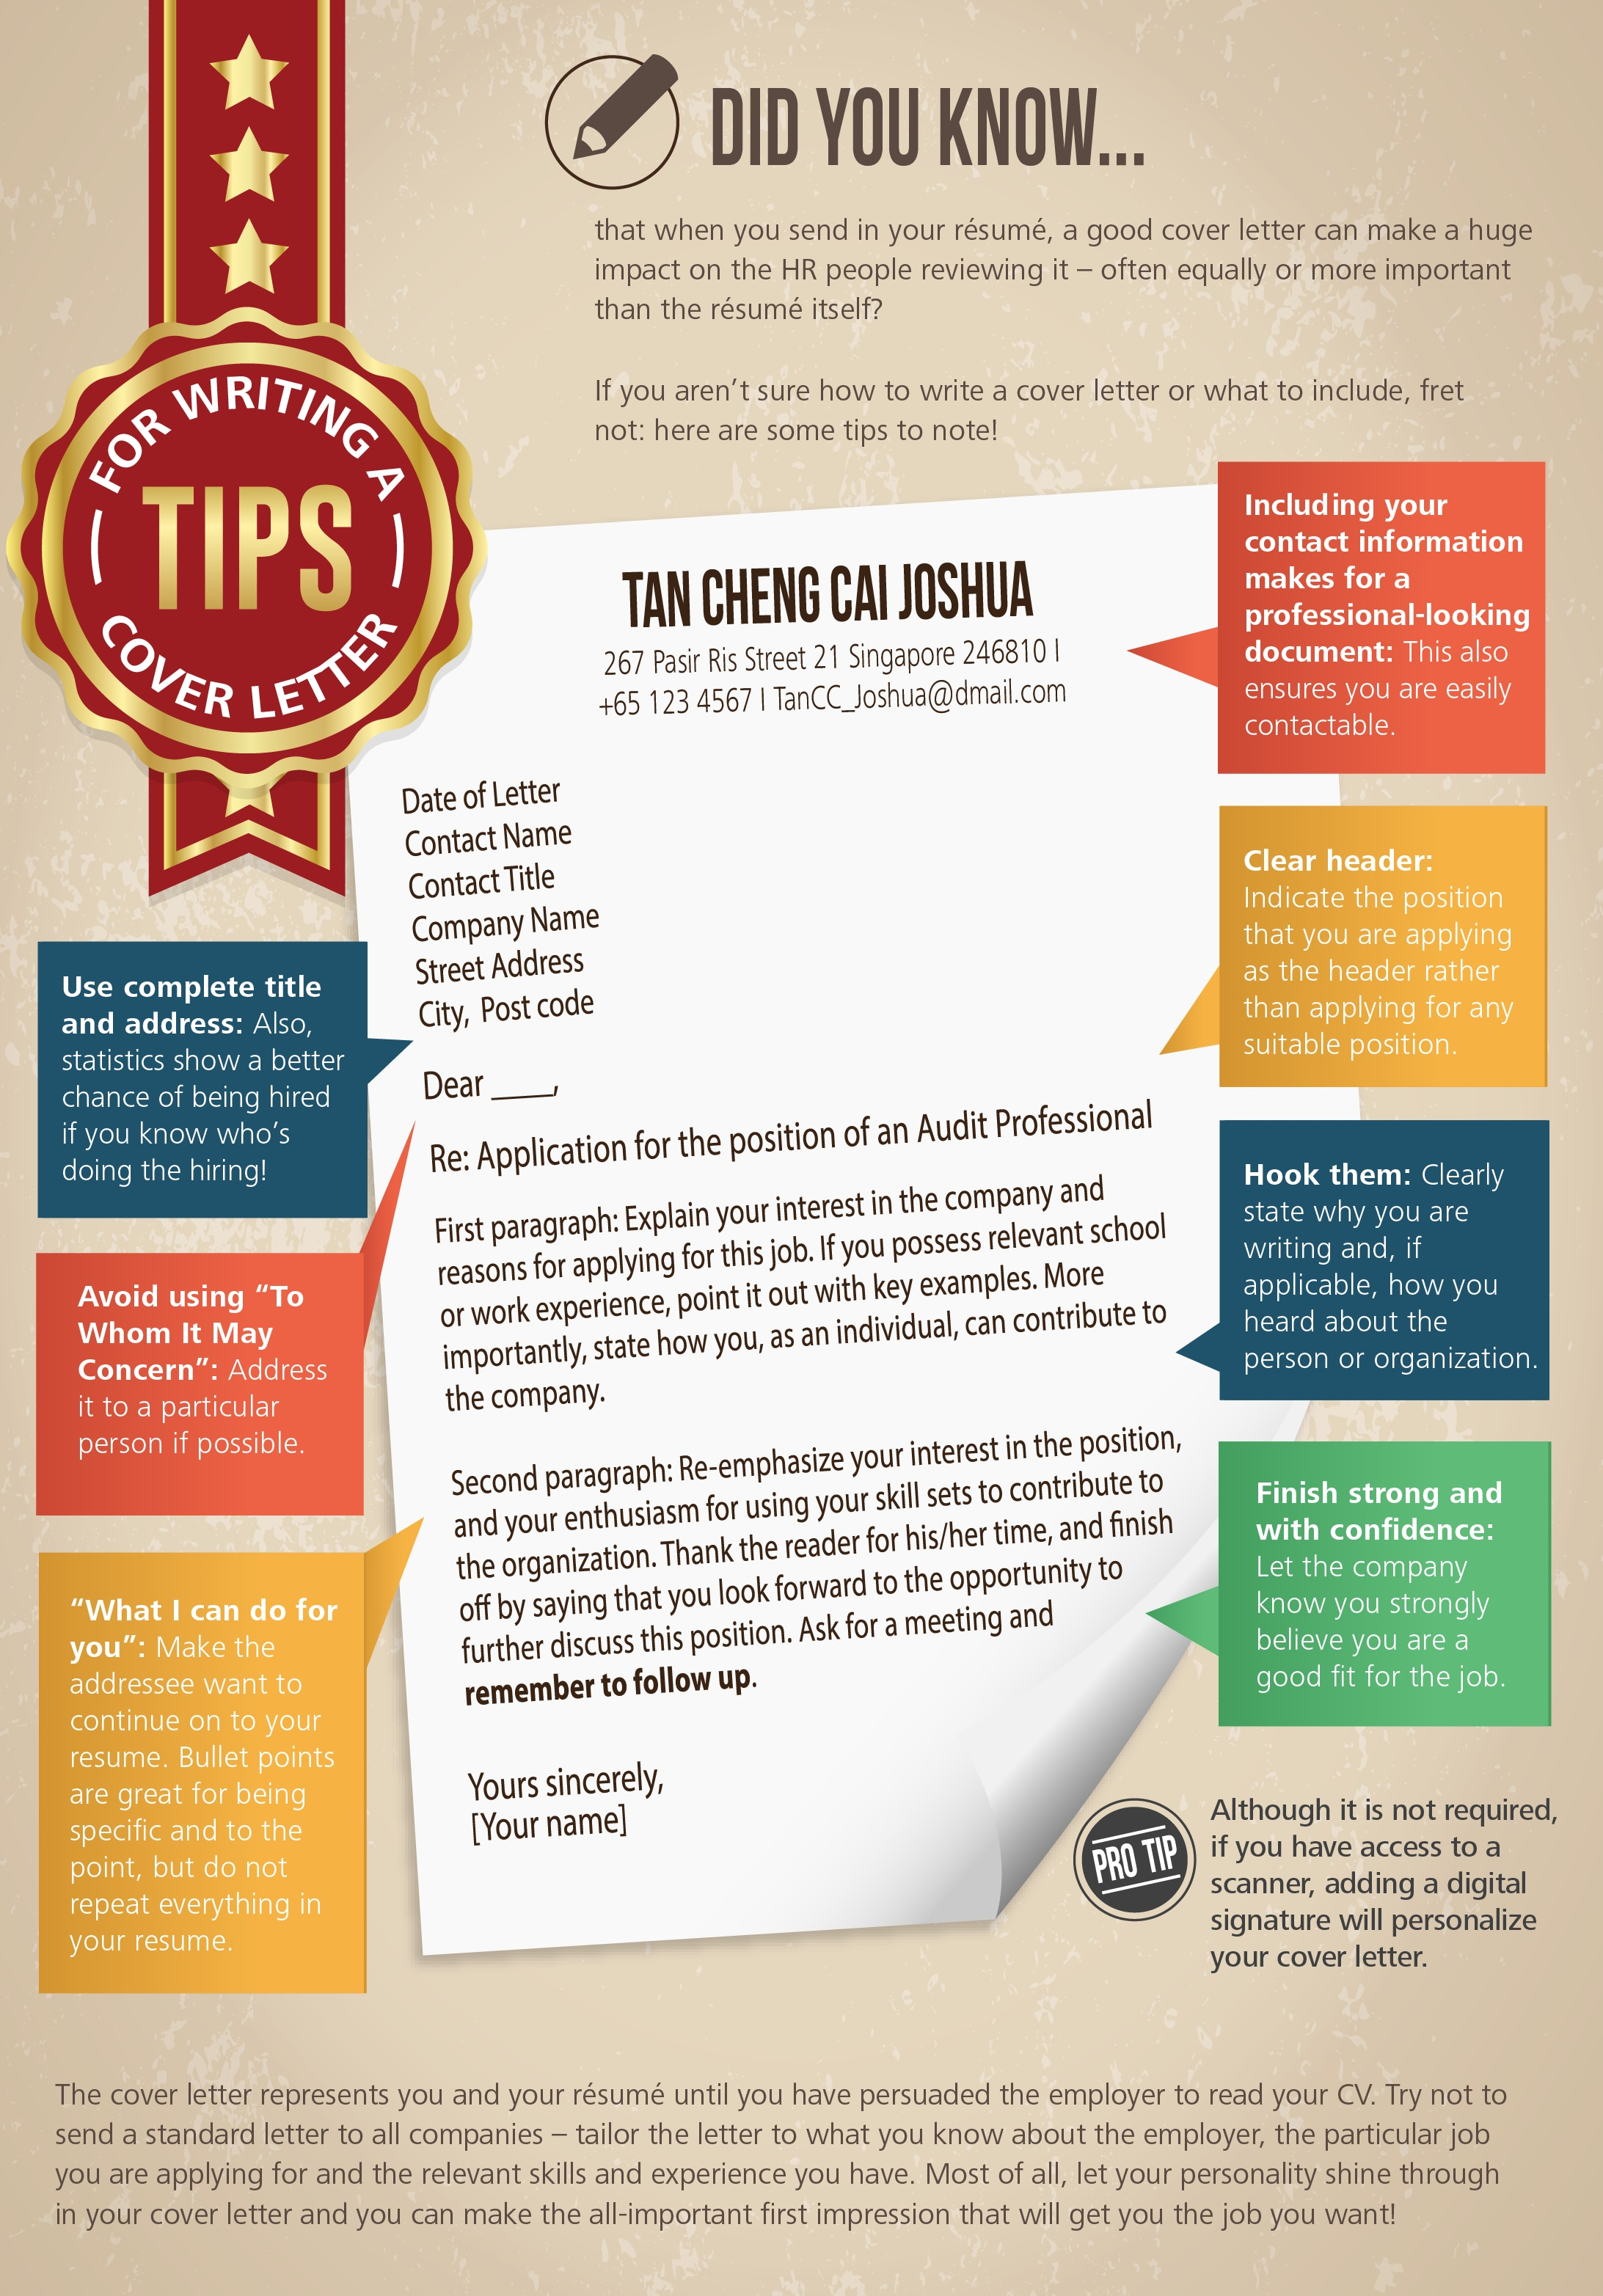 Tips for writing a cover letter deloitte singapore careers tips for writing a cover letter madrichimfo Gallery